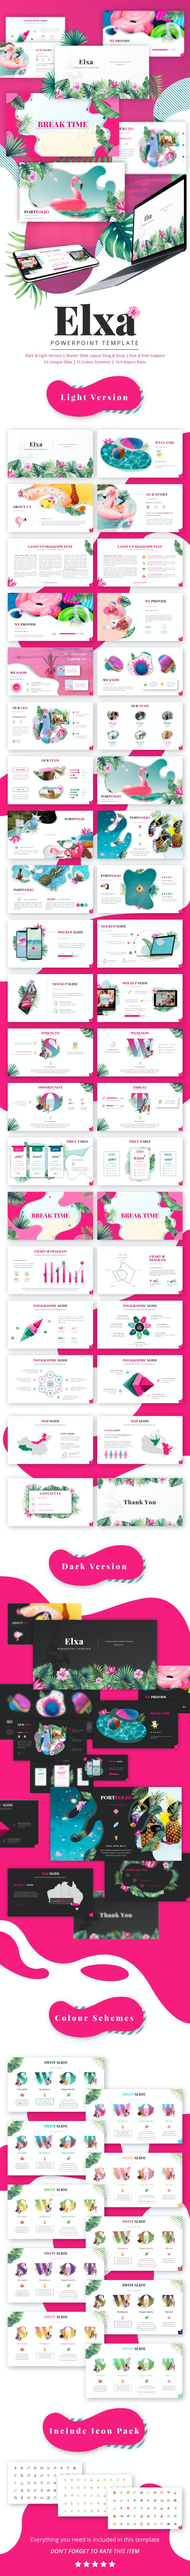 Elxa Tropical Presentation Template - Creative PowerPoint Templates